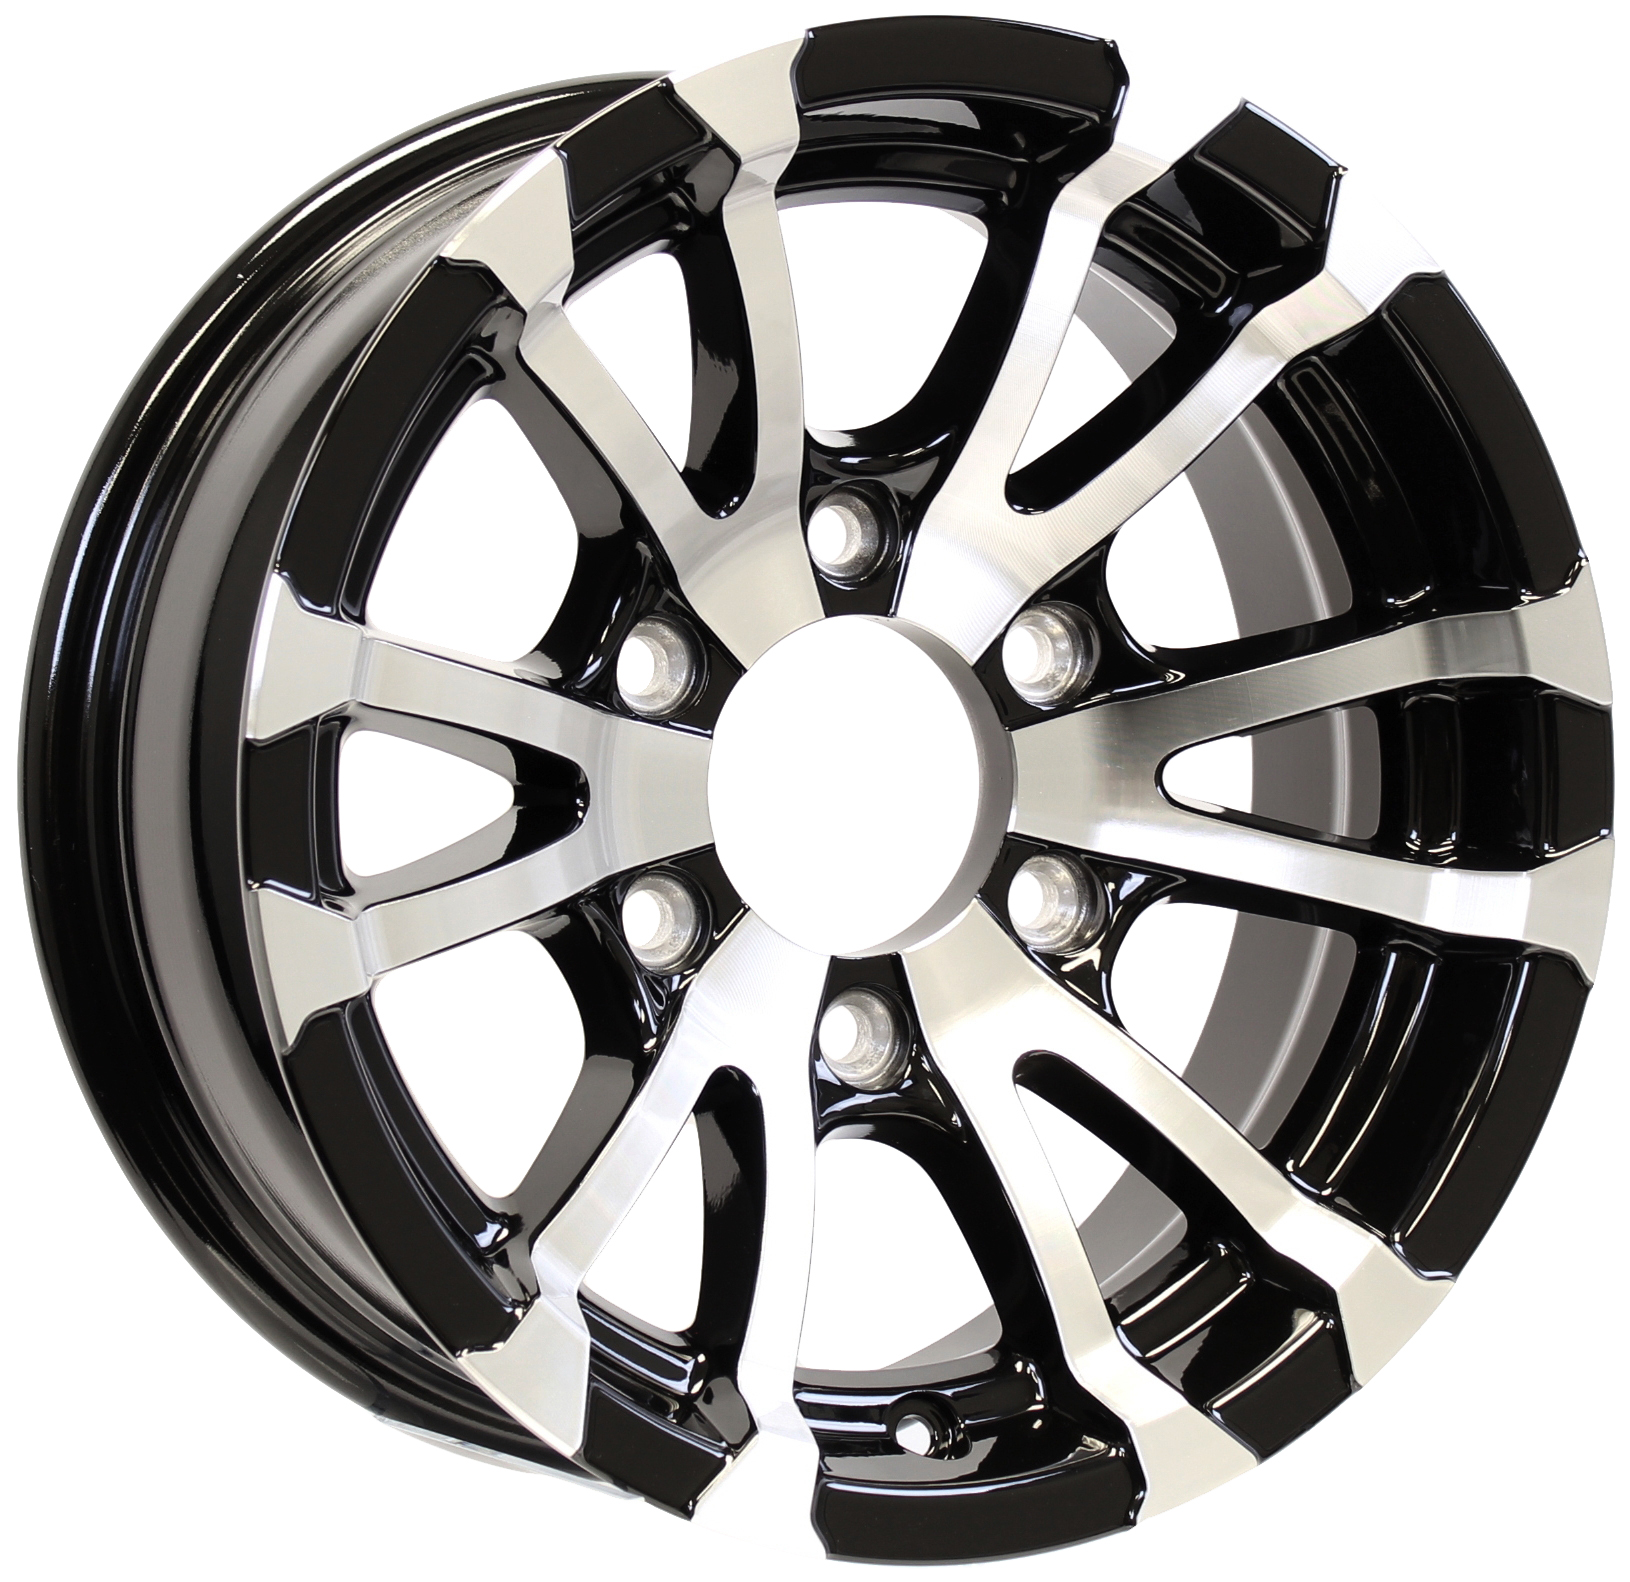 Avalanche- 15x6 6-Lug Black Aluminum Trailer Wheel Image